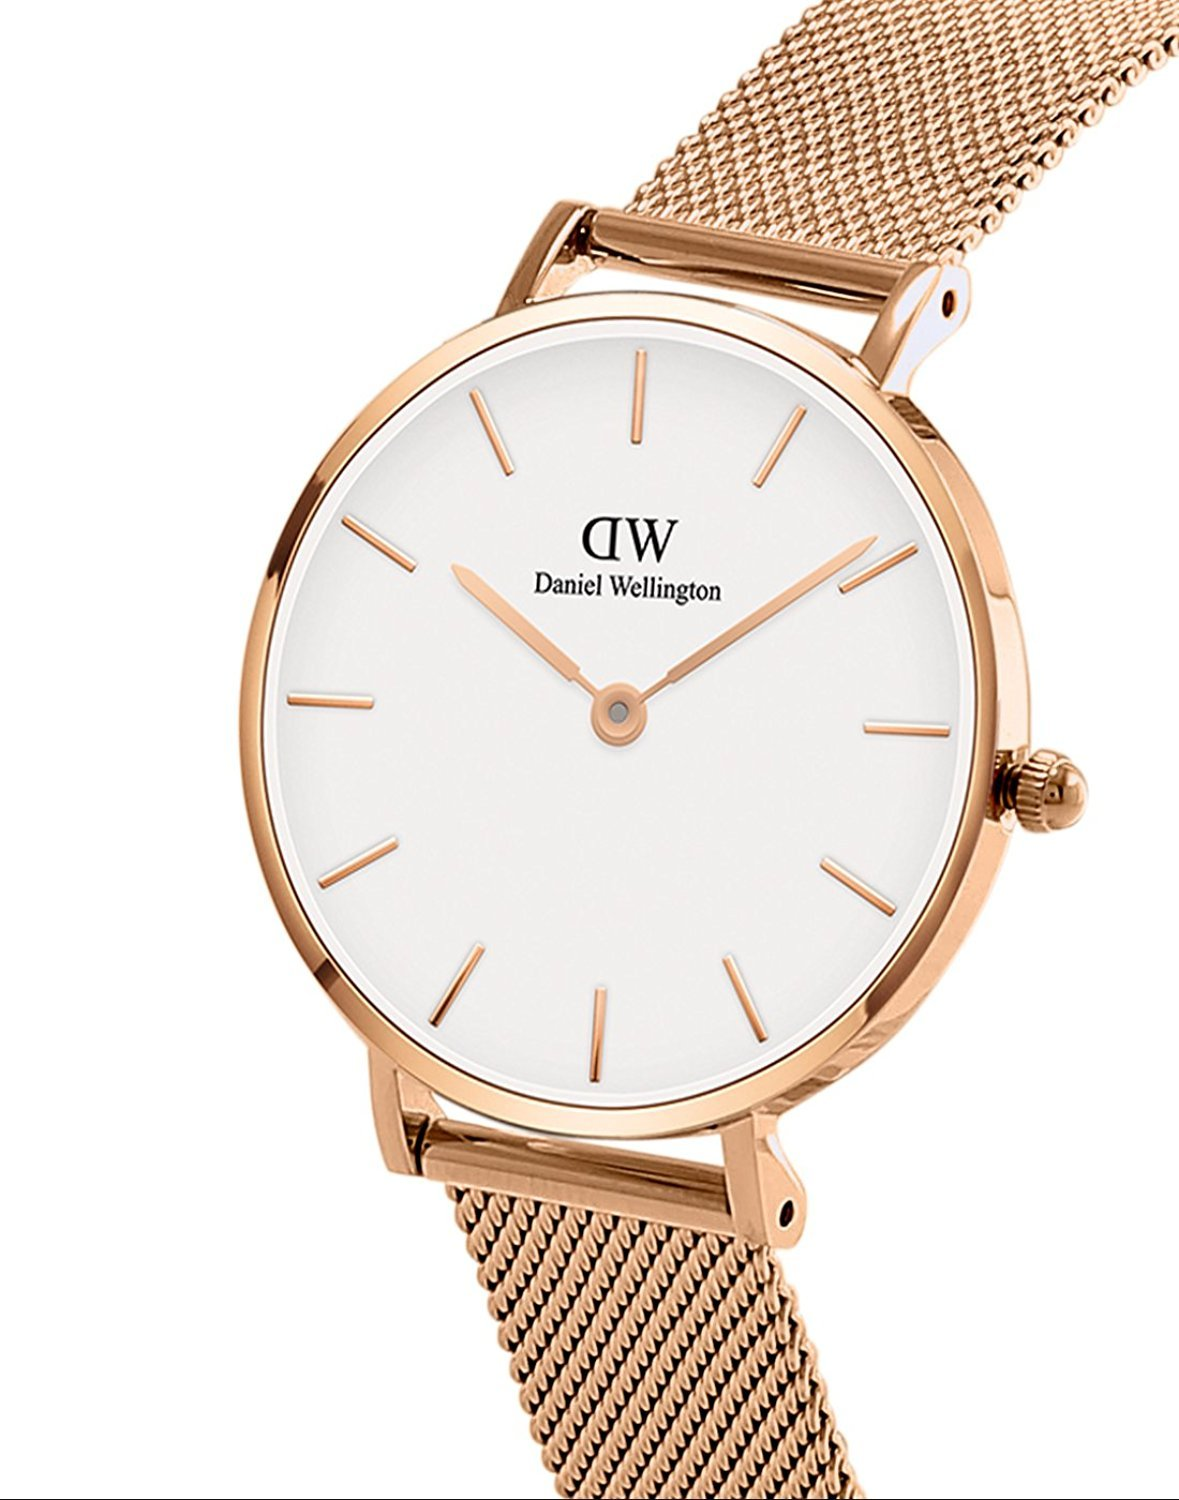 d1a3c87d87464e Daniel Wellington Classic Petite Melrose in White 28mm - DW00100219 < Wrist  Watches < Clothing, Shoes & Jewelry - tibs